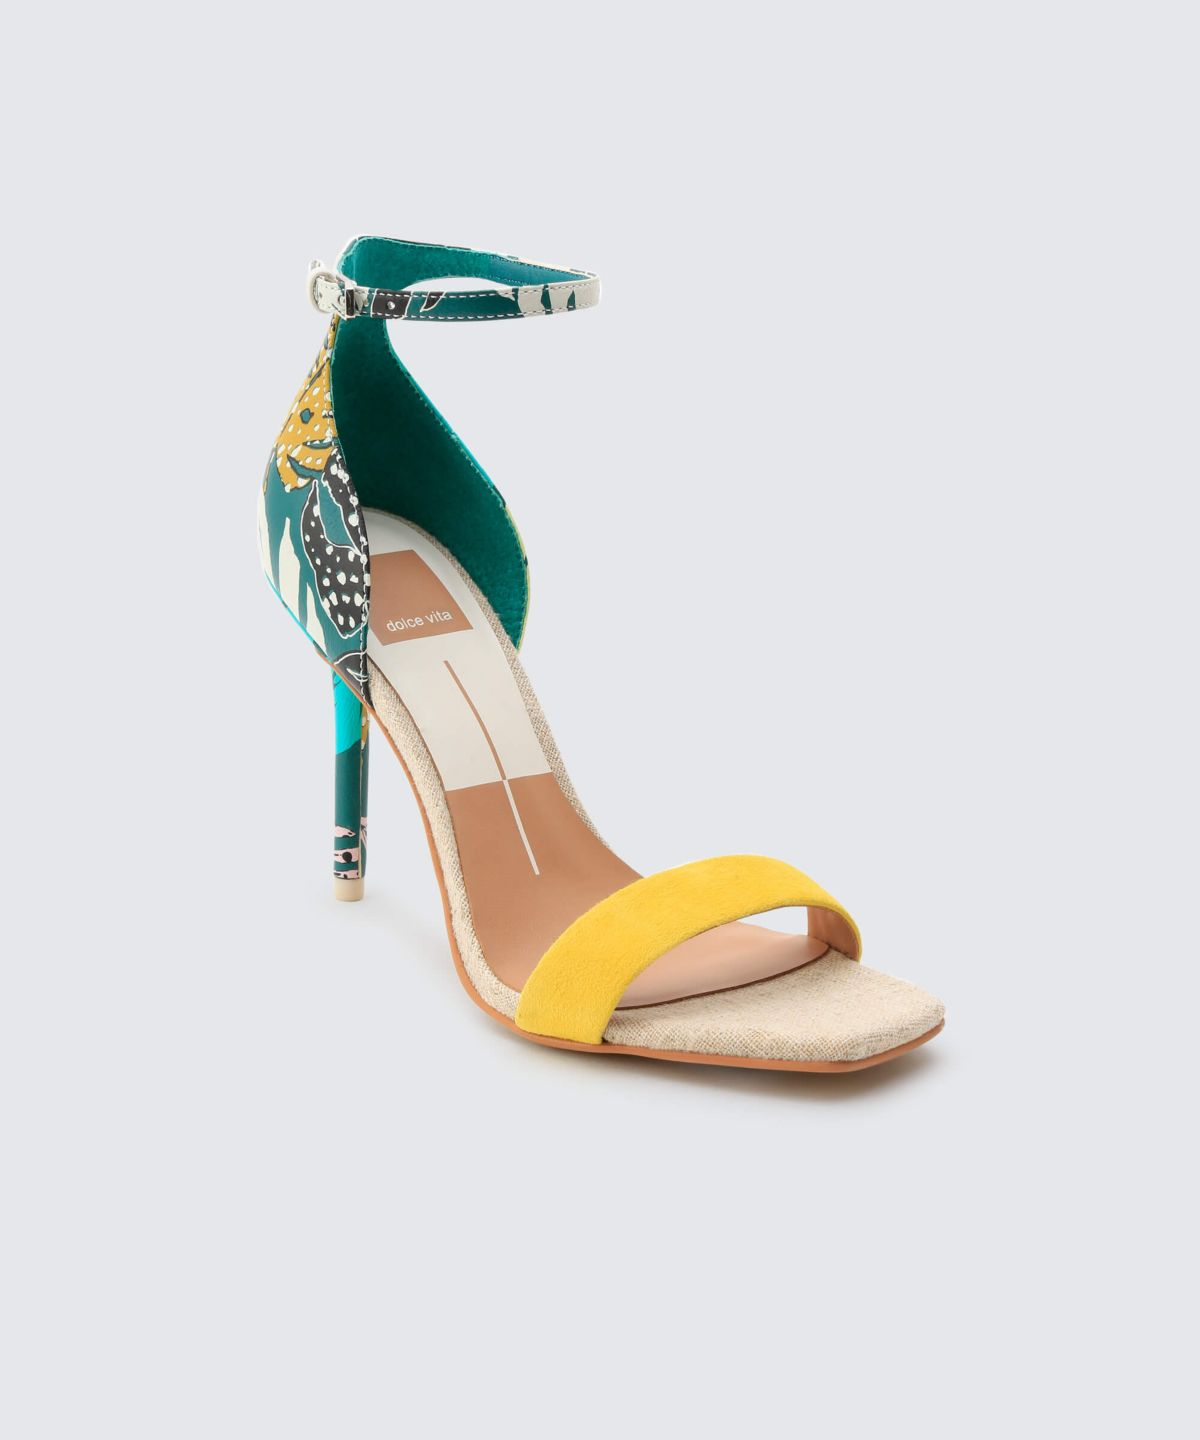 Dolce Vita Halo Green Palm Pump